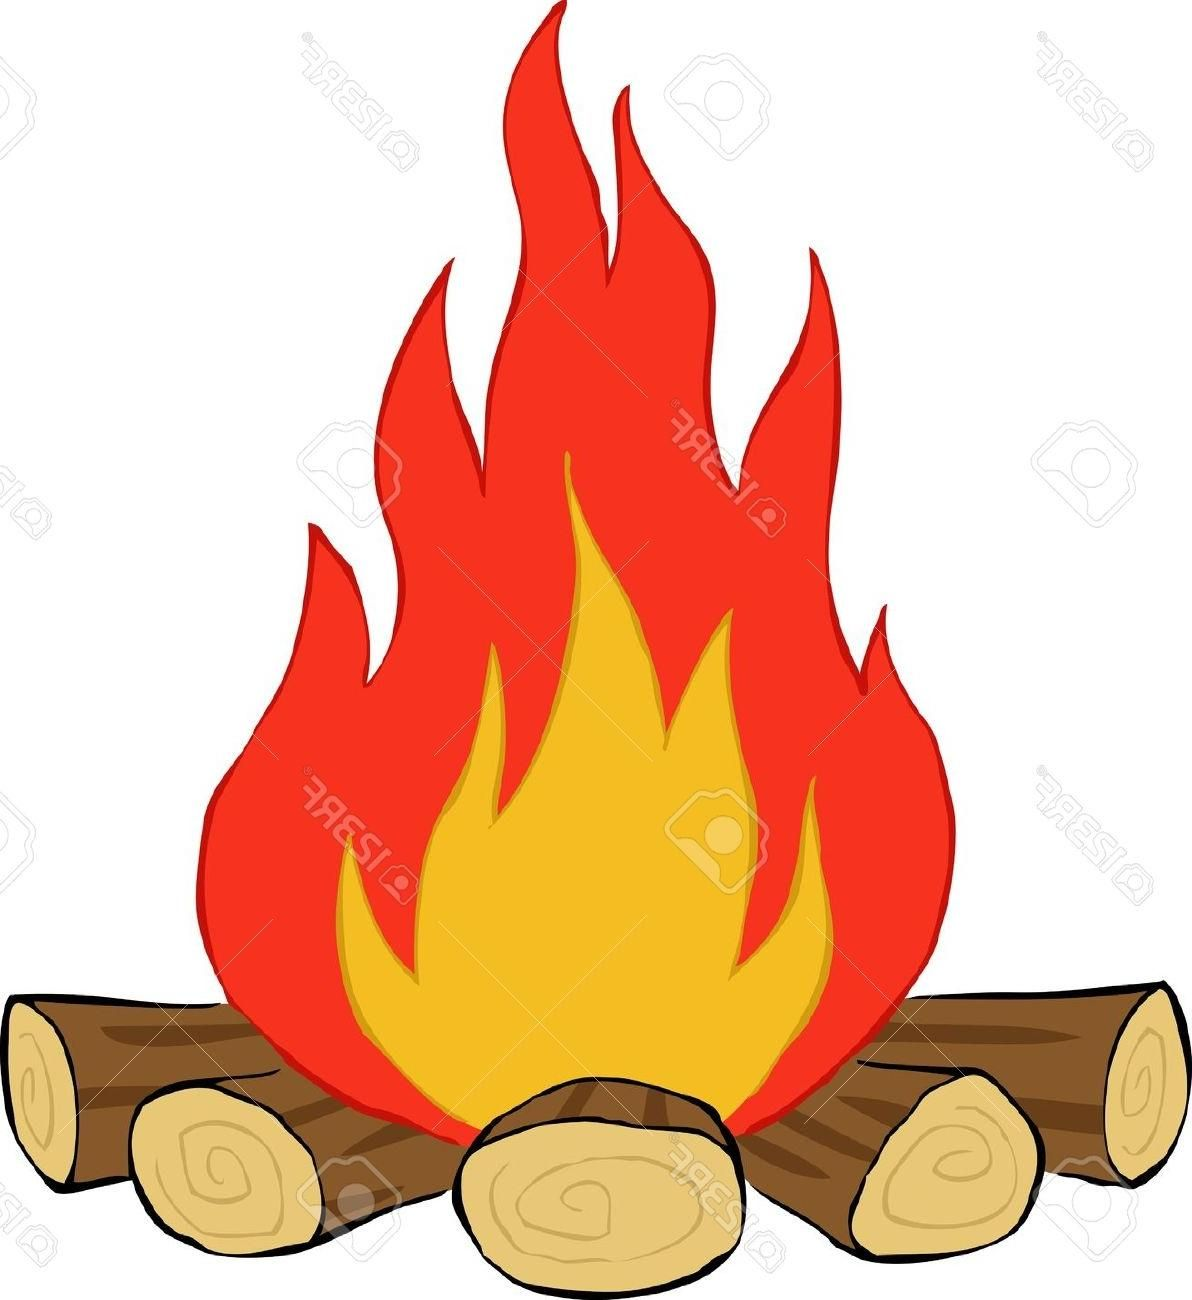 Best Free Camp Fire Clipart Log Images Clip Art Fire Image Log Image